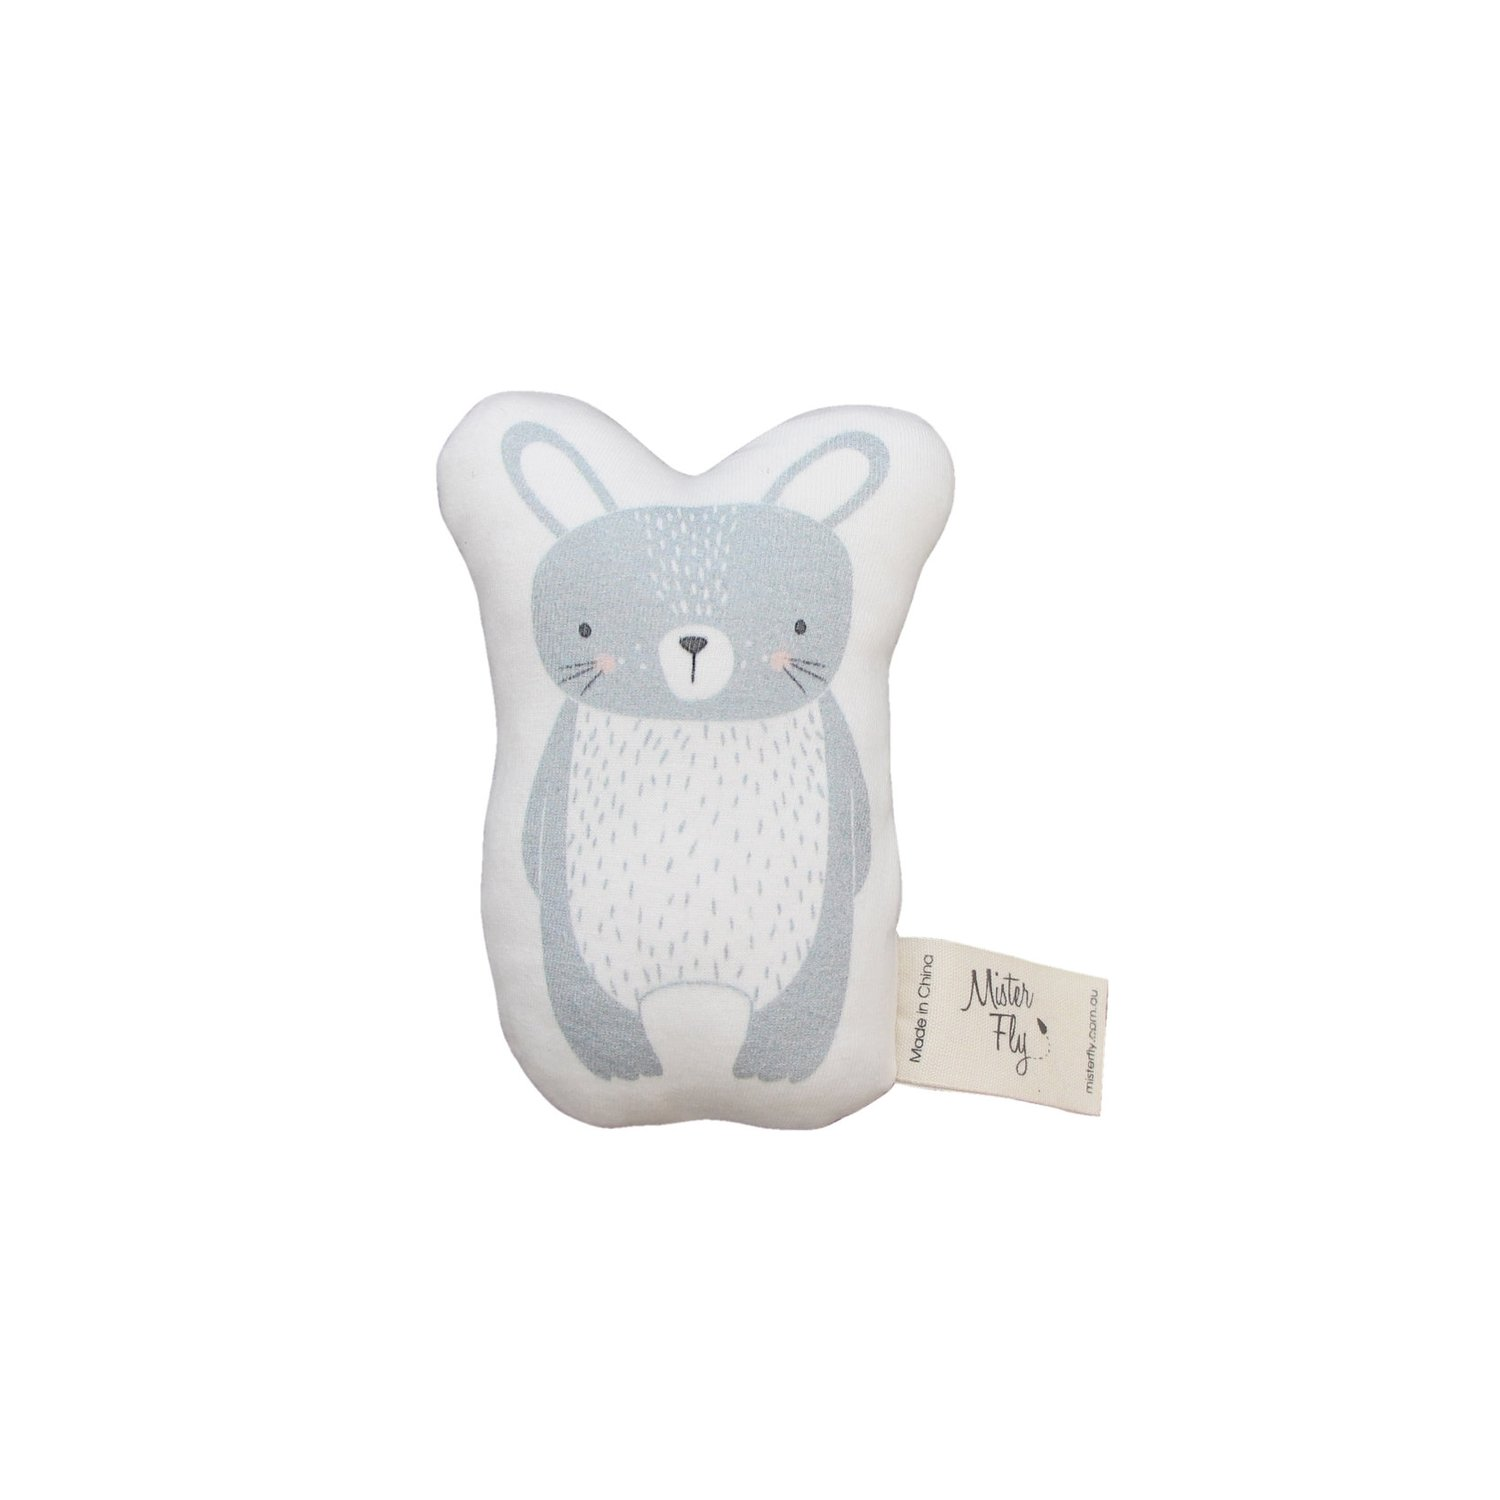 Mister Fly Bunny Rattle